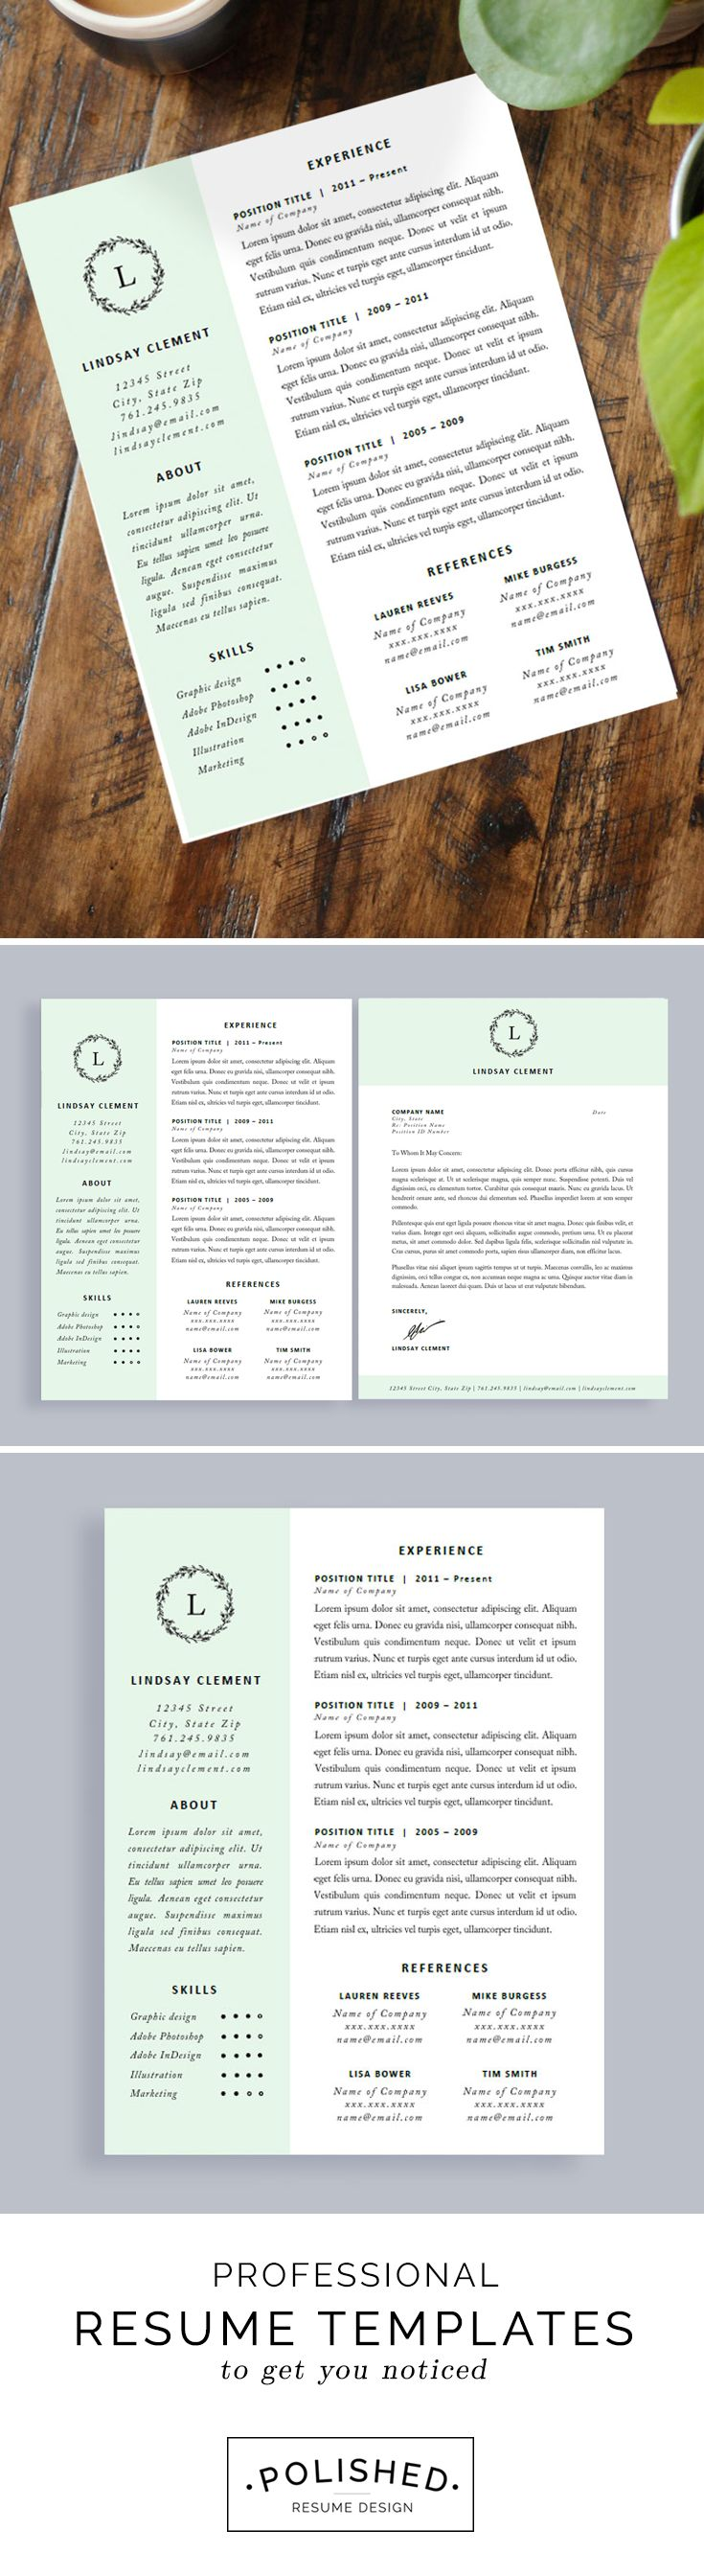 professional resume templates for microsoft word features 1 and 2 page options plus a free cover letter - Free Cover Letter For Resume Template